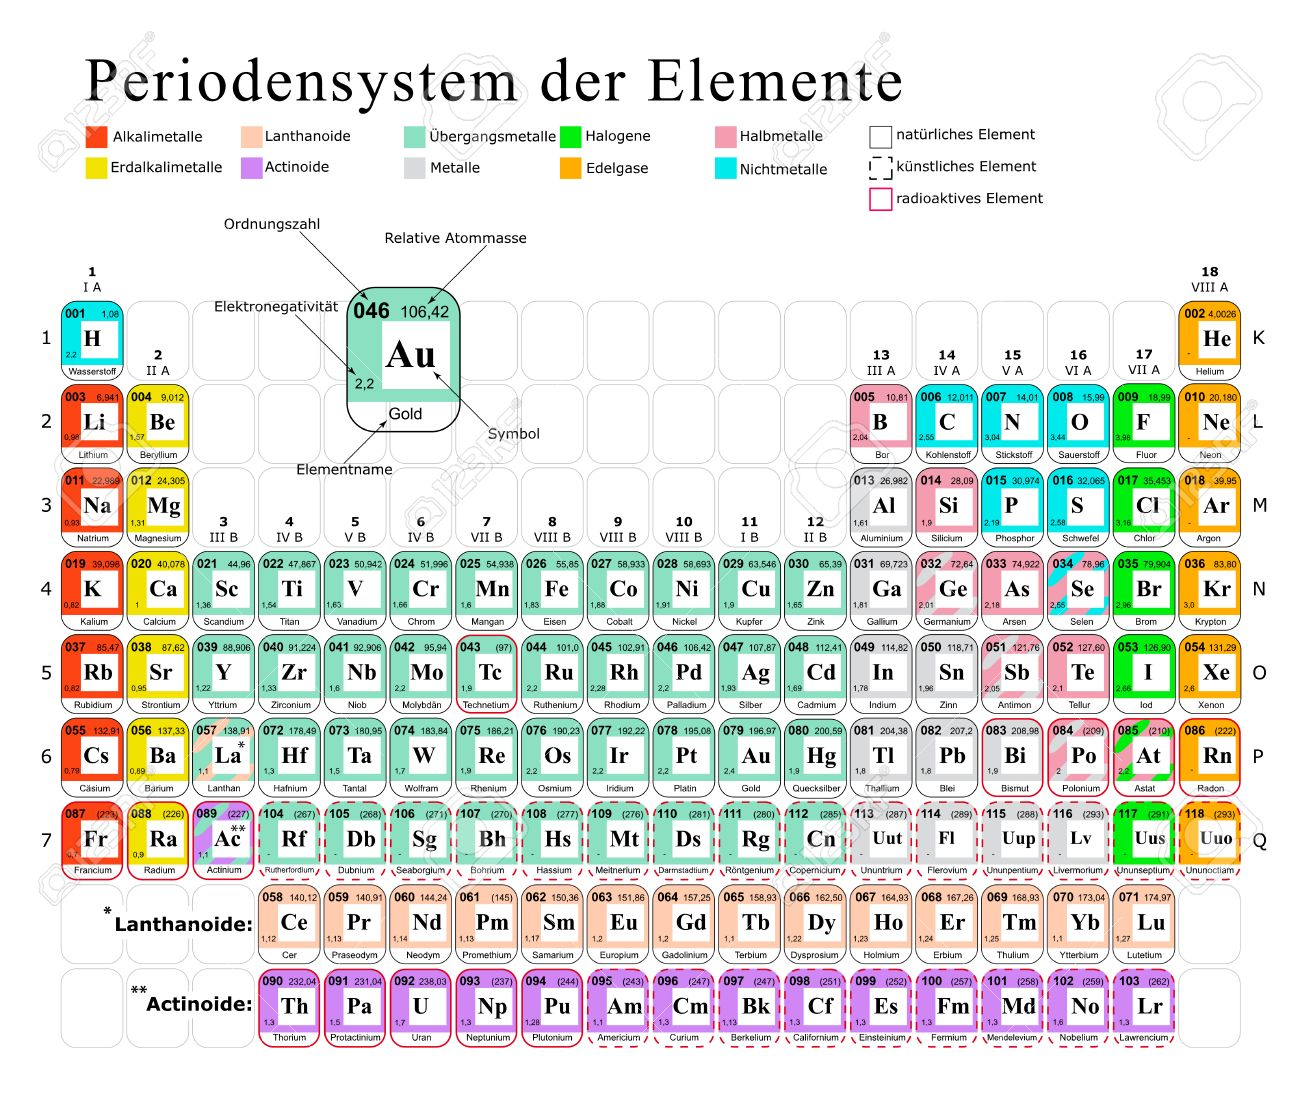 Colorful 2D Periodic Table of Chemical Elements Wallpaper - Learning